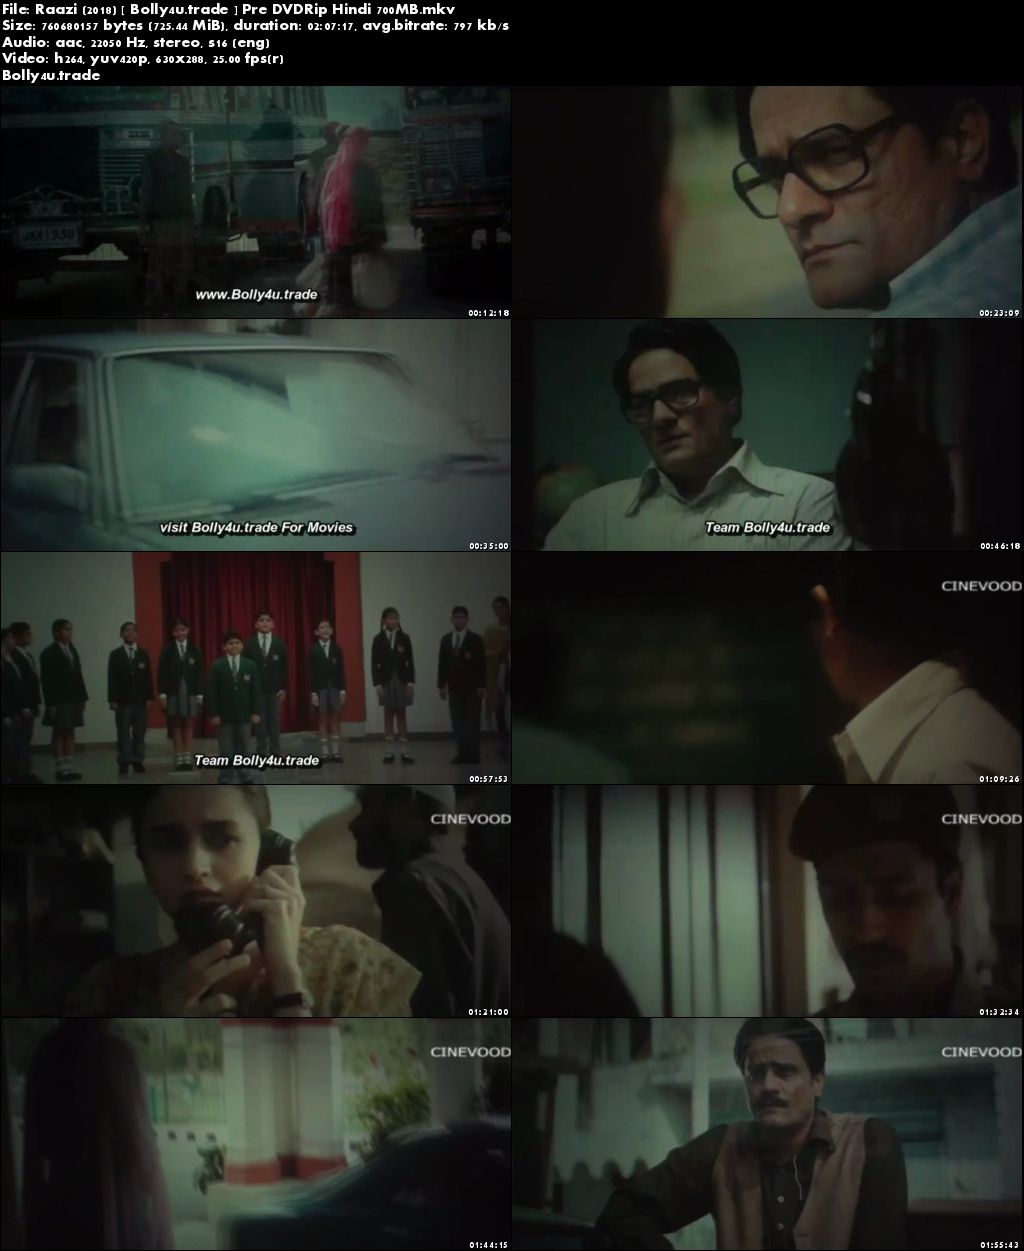 Raazi 2018 Pre DVDRip 350Mb Full Hindi Movie Download 480p